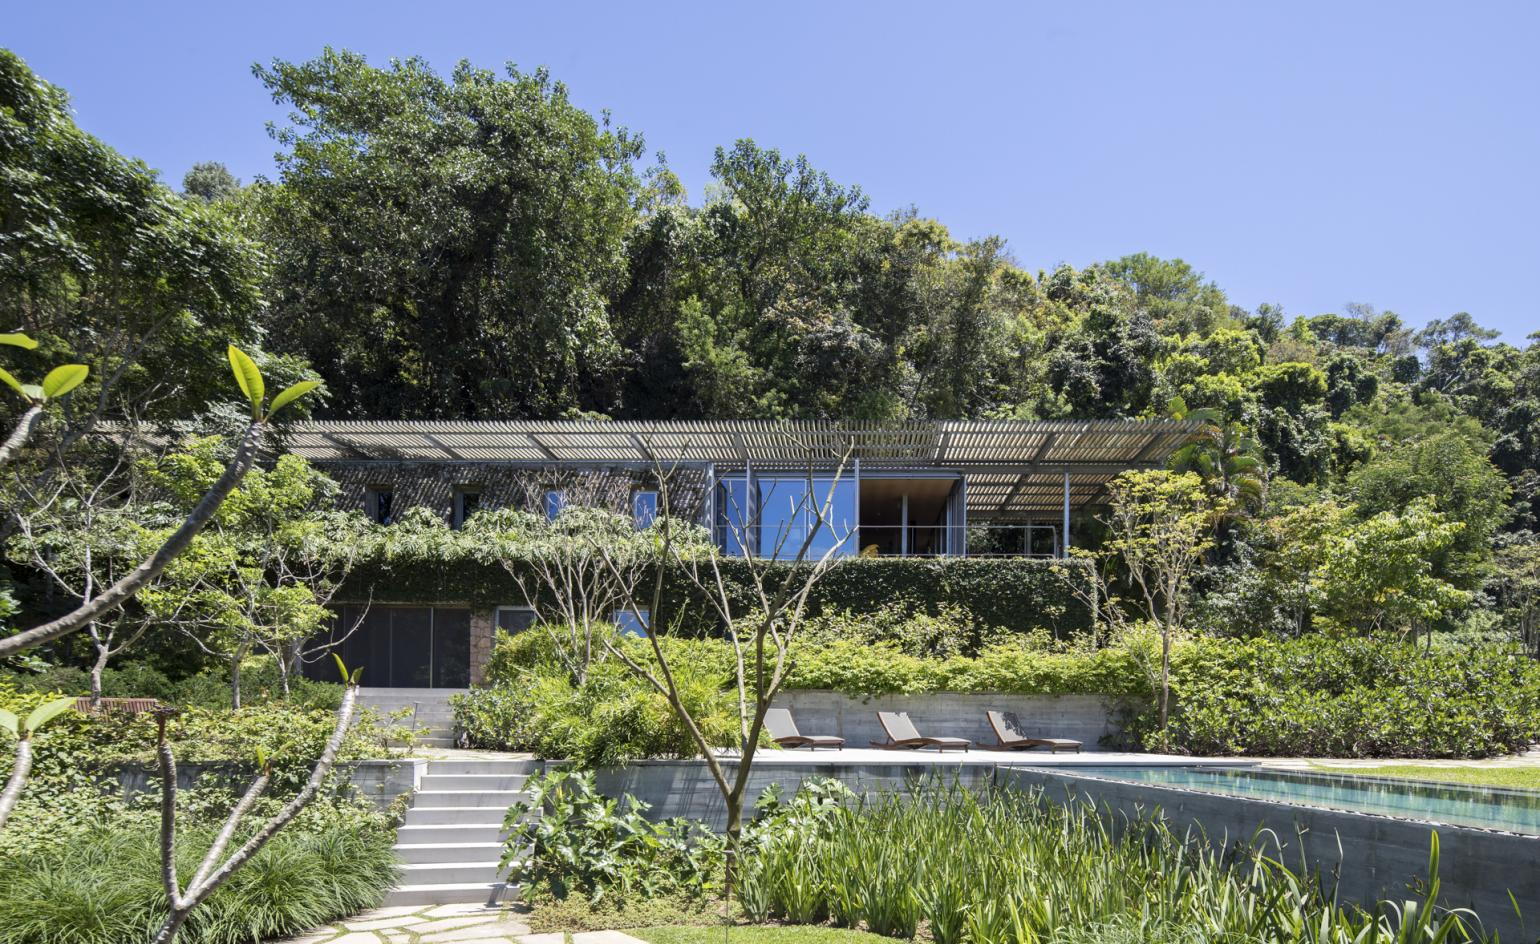 A Rio family home by Andade Morettin is the ultimate urban retreat